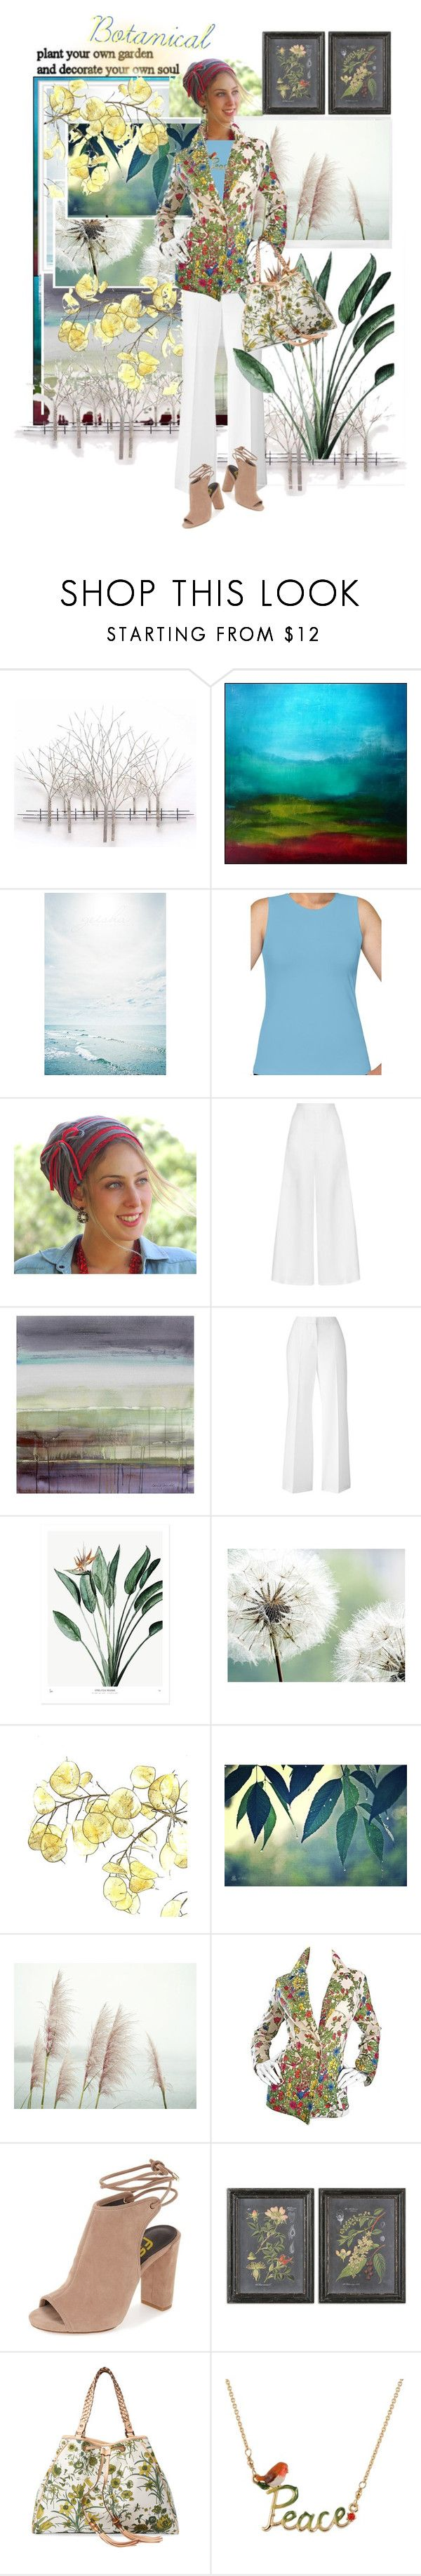 """""""Botanical🌿🍃"""" by tmcintyre ❤ liked on Polyvore featuring Home Decorators Collection, Kosher Casual, Miguelina, Ross & Brown, Uttermost, Gucci and Les Néréides"""